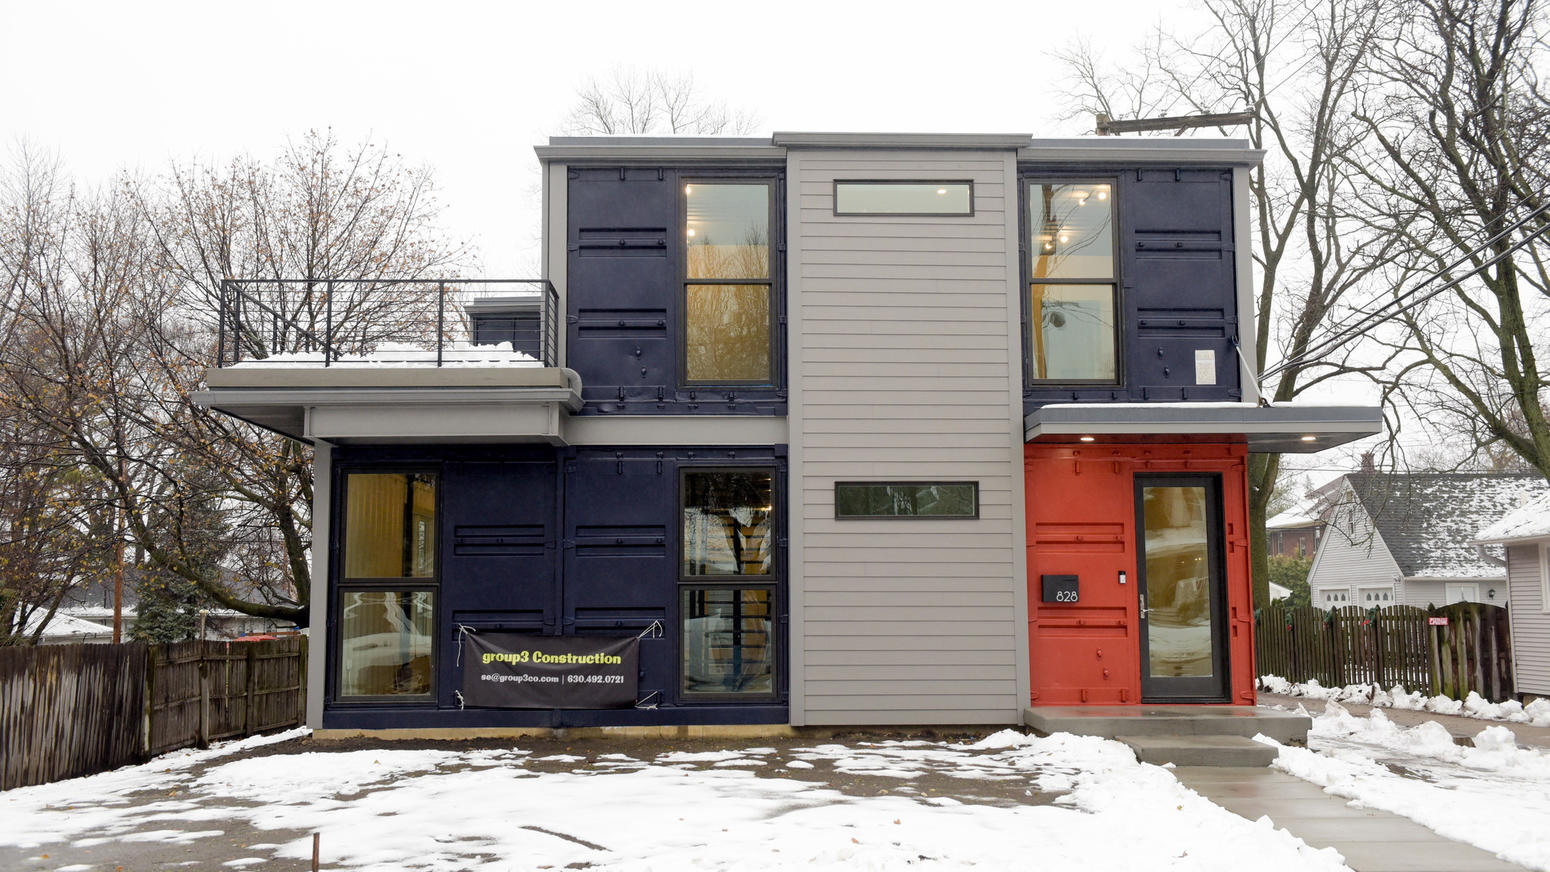 ct-st-charles-container-home-20181206-002.jpg